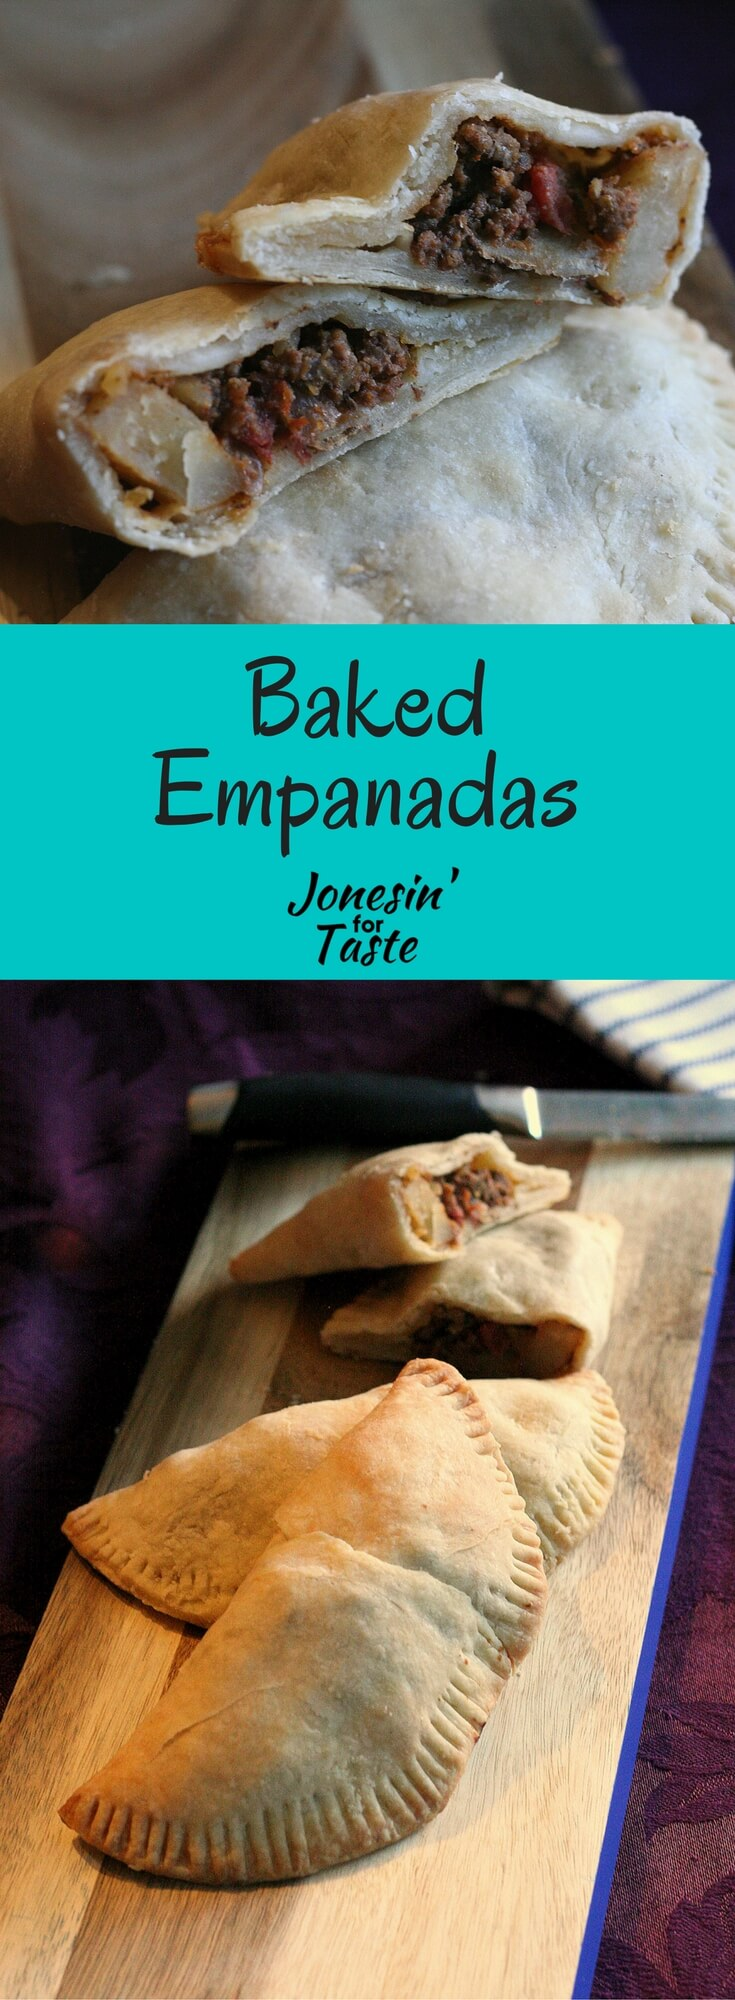 Homemade baked empanadas are full of amazing flavor stuffed with ground turkey, corn, potatoes, and can be fried instead, if desired.